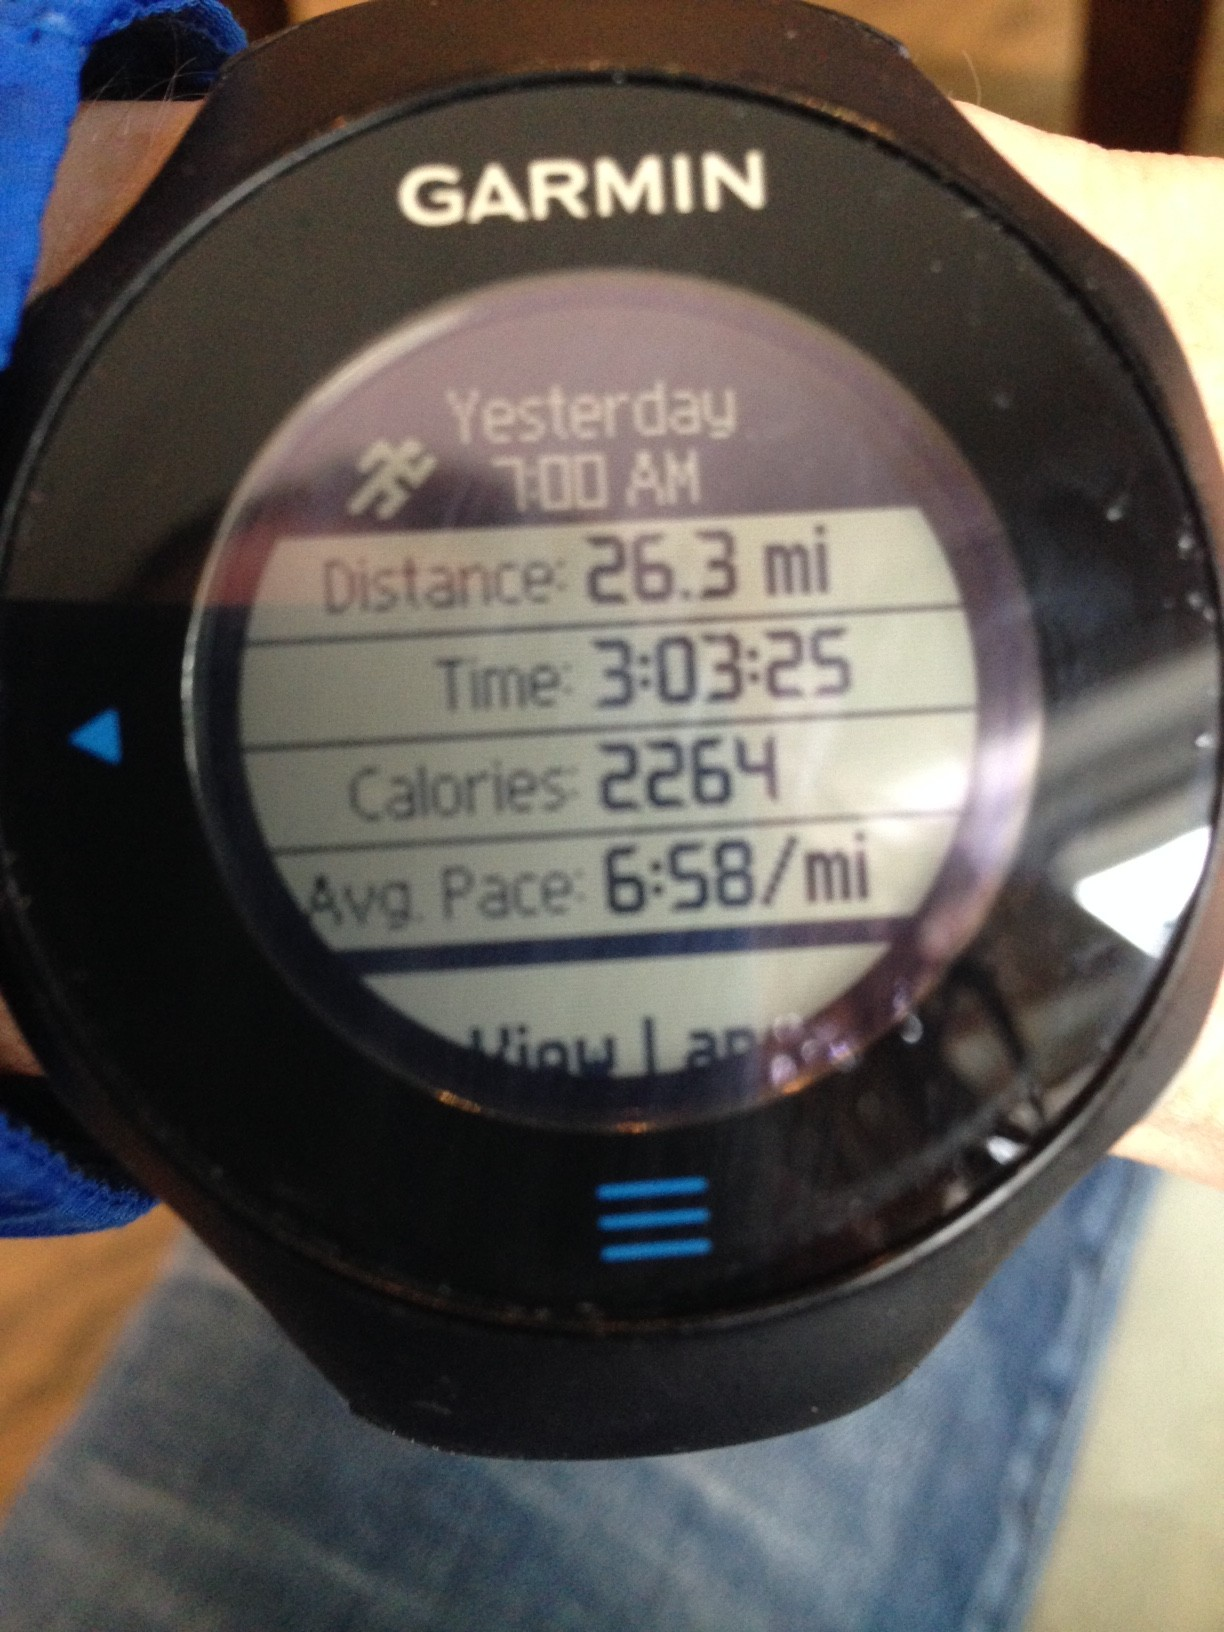 First time I've ever seen an average marathon pace in the 6's on my Garmin - too bad the official average was 7 min!